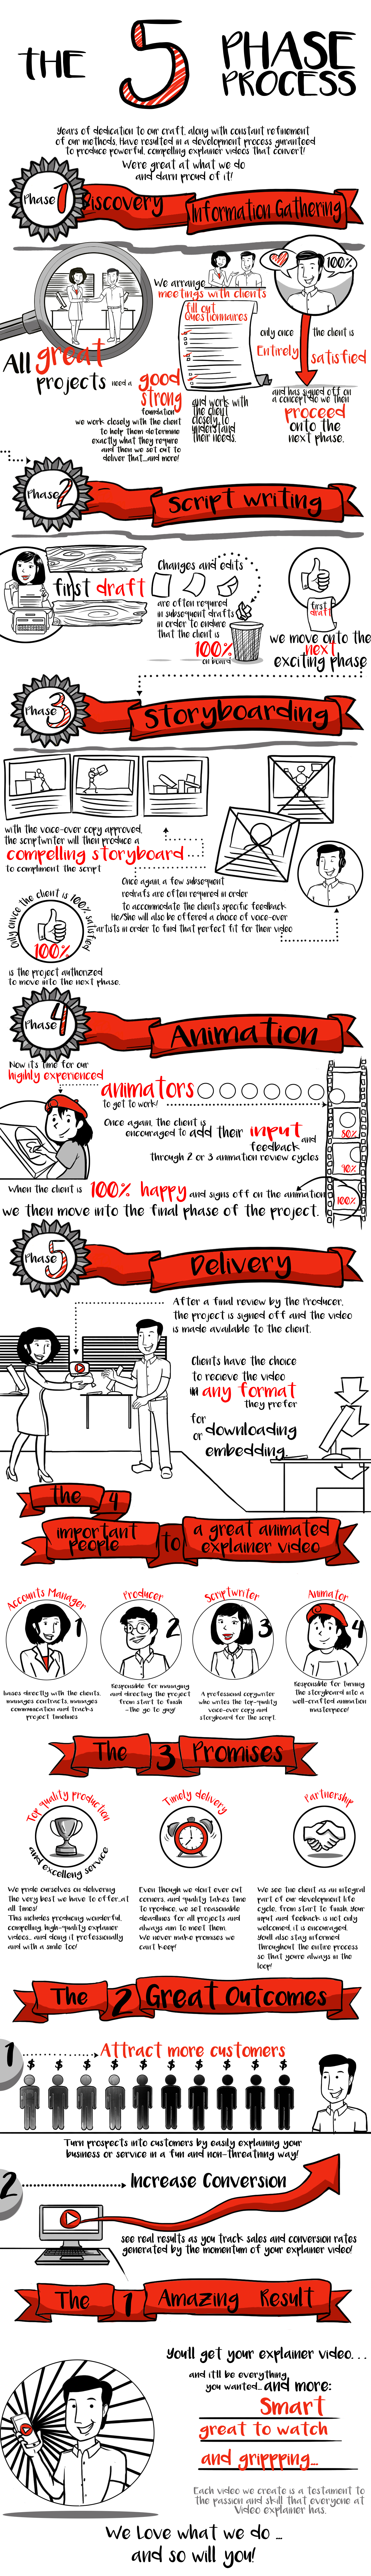 Whiteboard animated video process info graphics